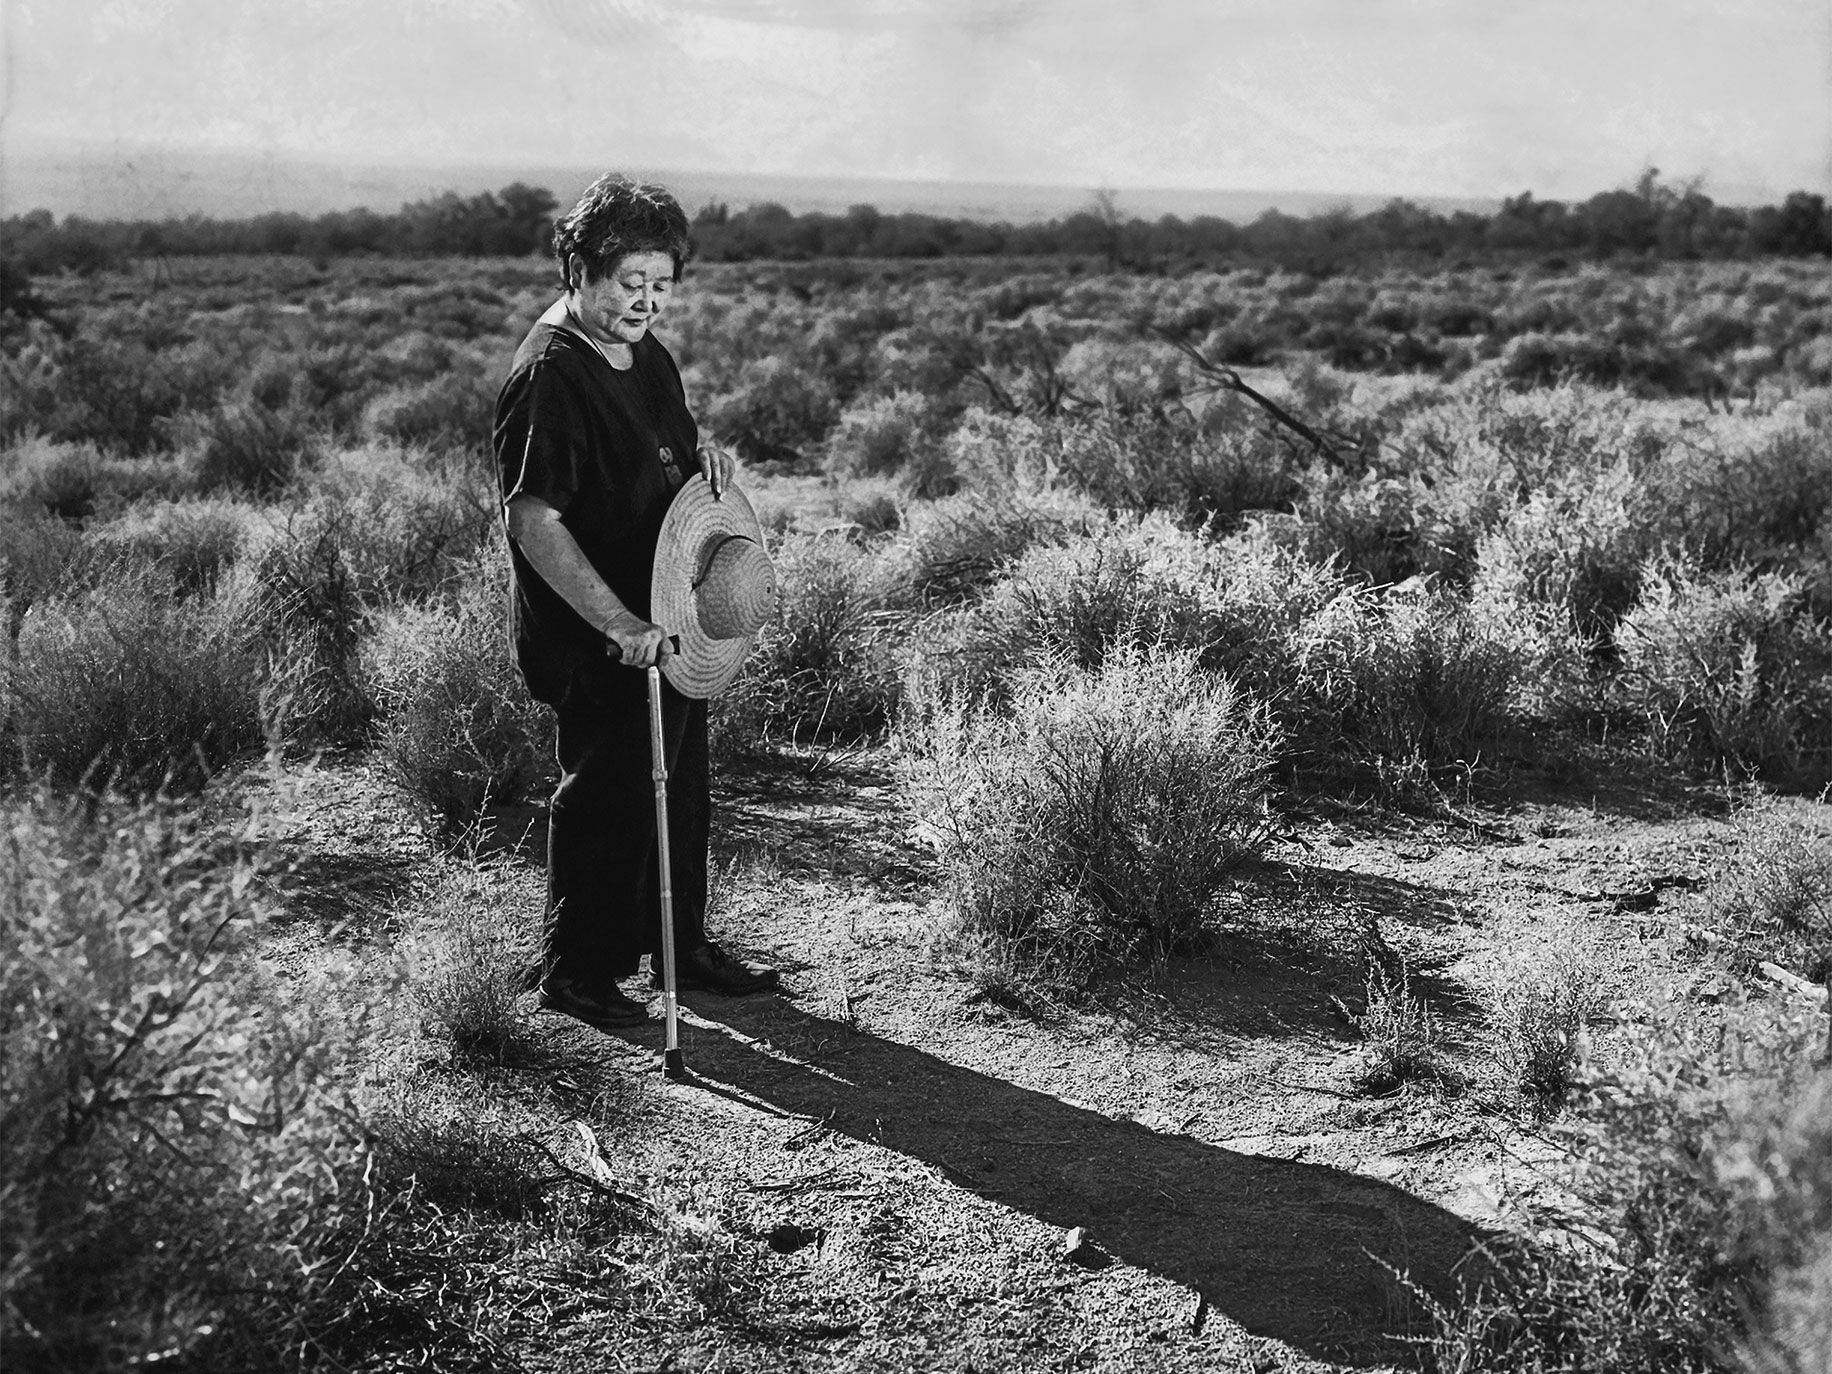 Yukiko Okinaga Llewellyn, 66, revisits the Manzanar War Relocation Center in 2005.